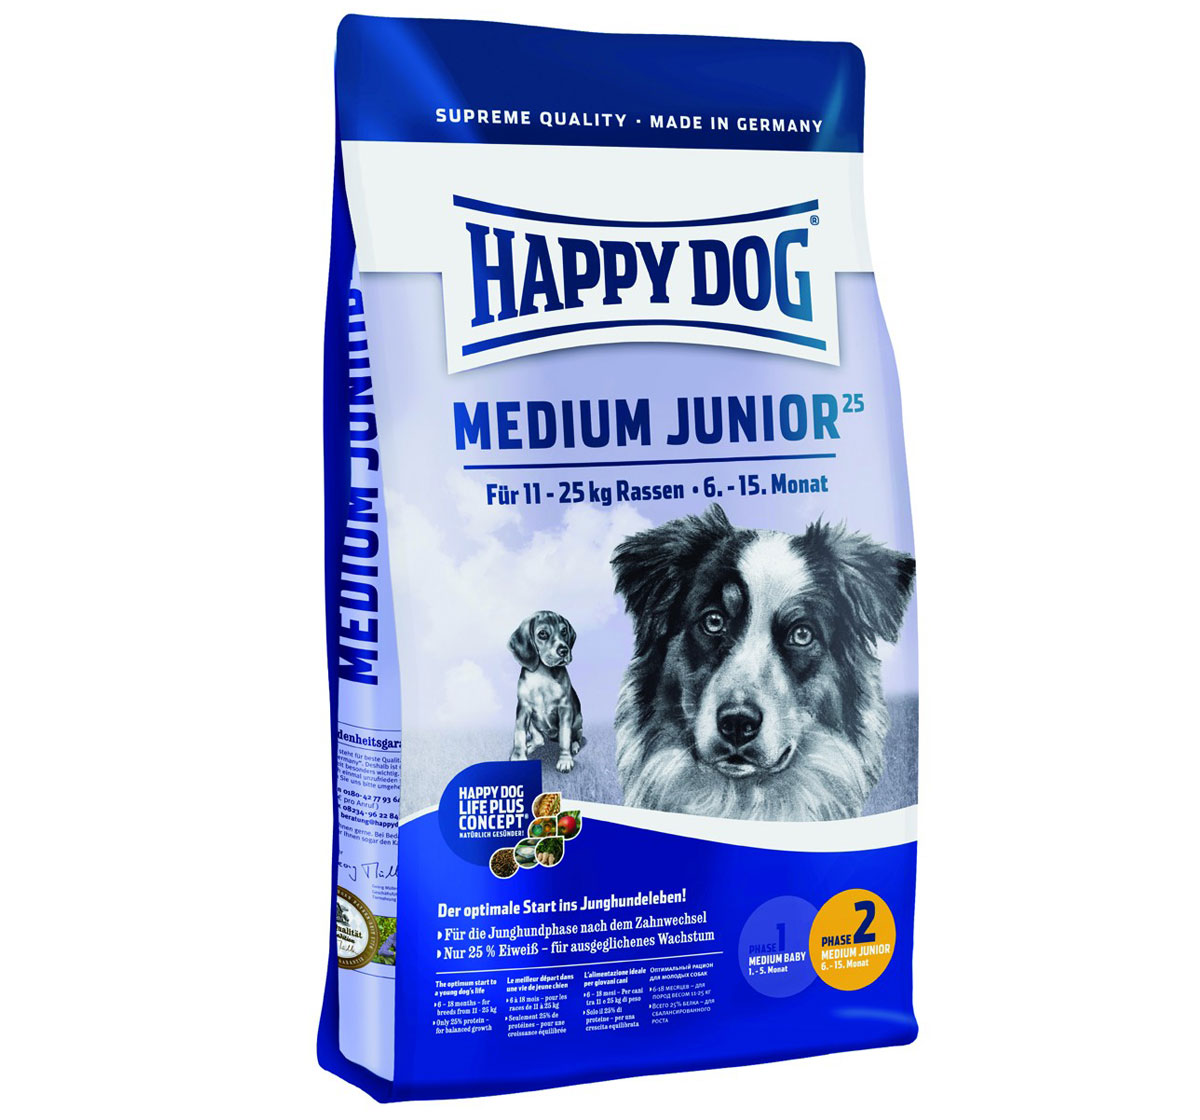 happy dog medium breed junior dog food 10 kg dogspot online pet supply store. Black Bedroom Furniture Sets. Home Design Ideas